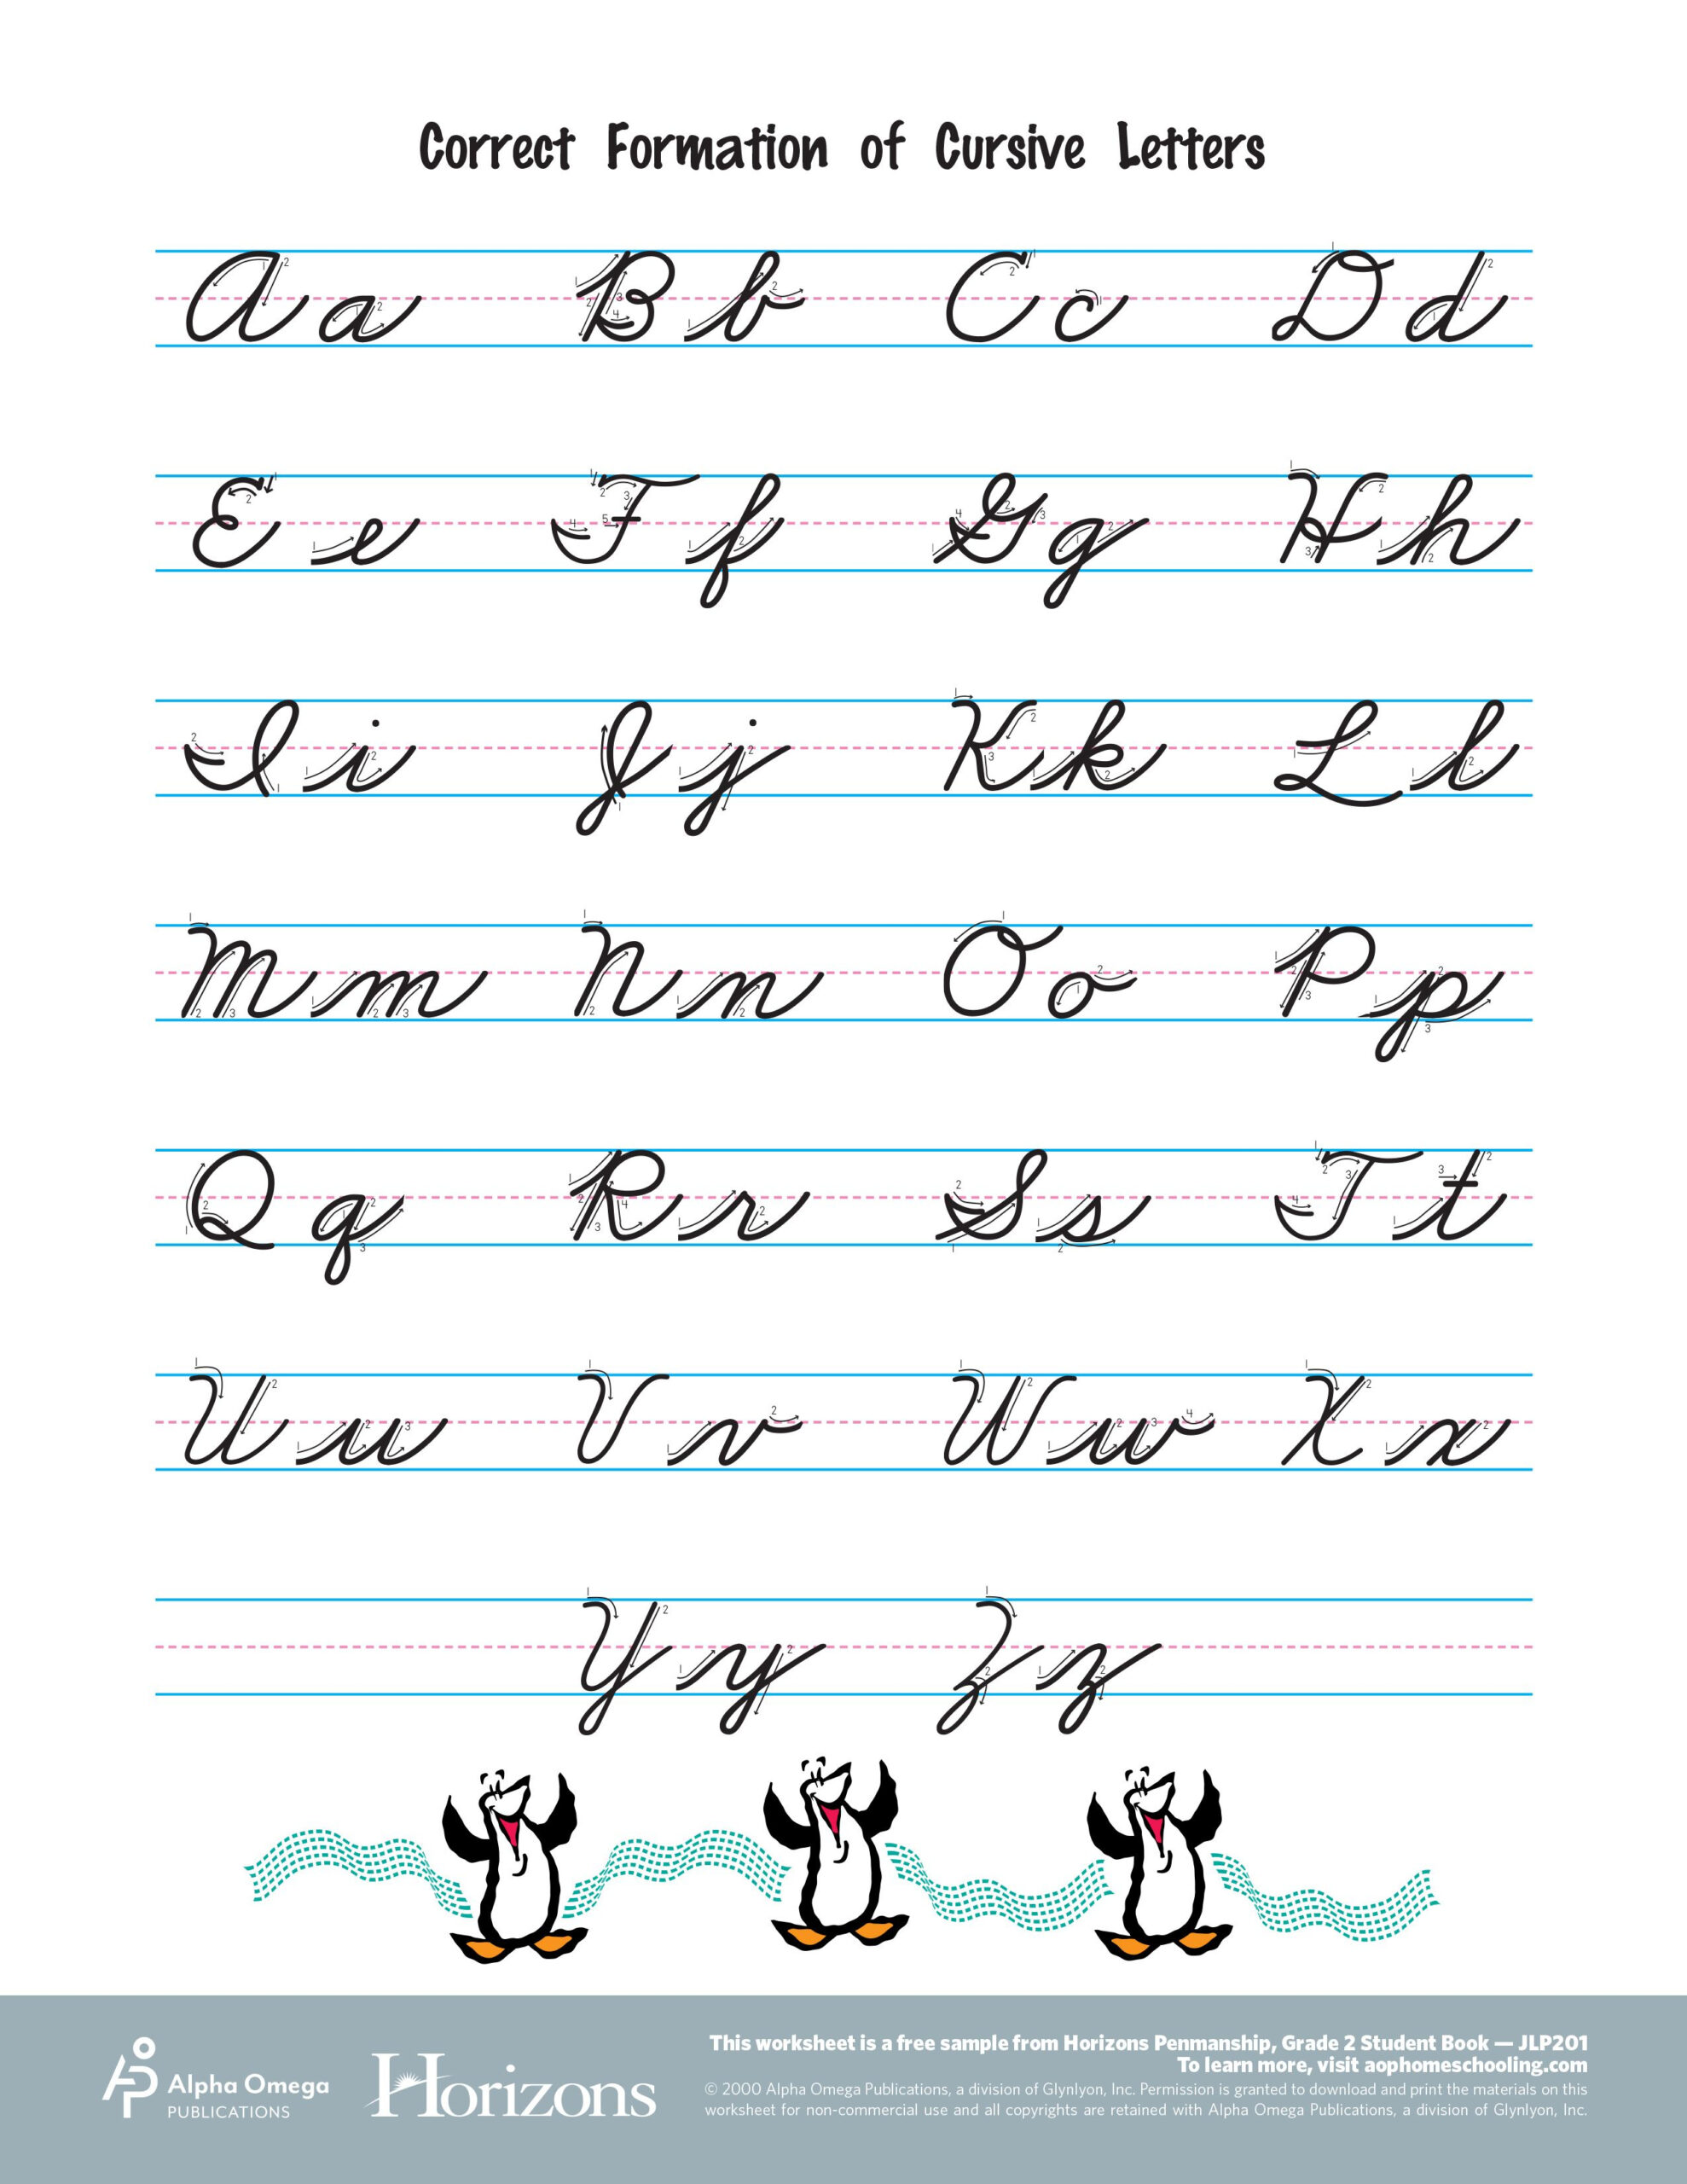 Interactive Cursive Letter Formation